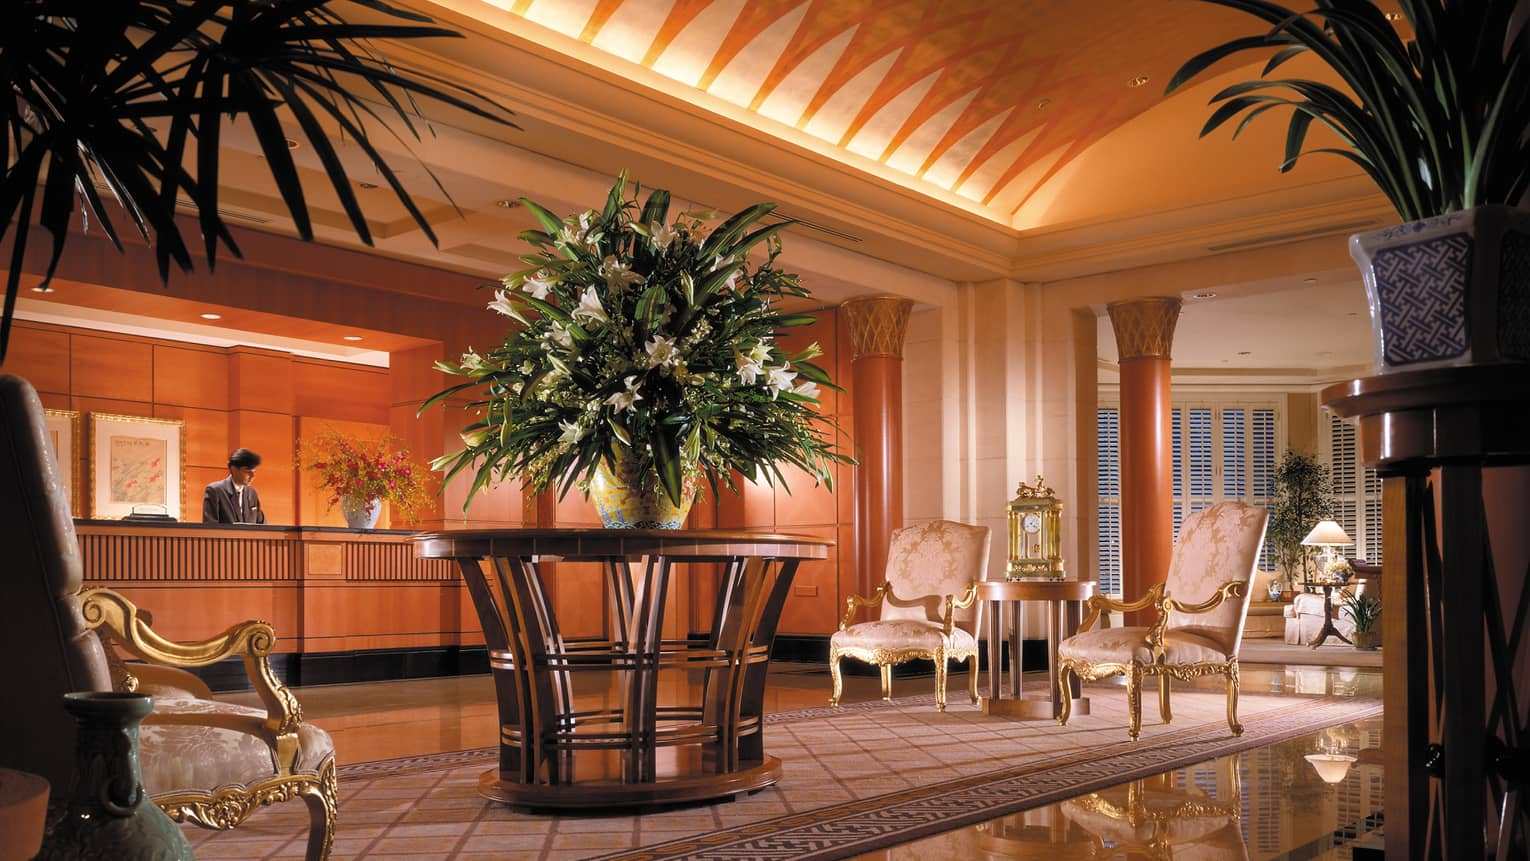 Large vase with flowers in hotel lobby with antique-style pink chairs with gold trim